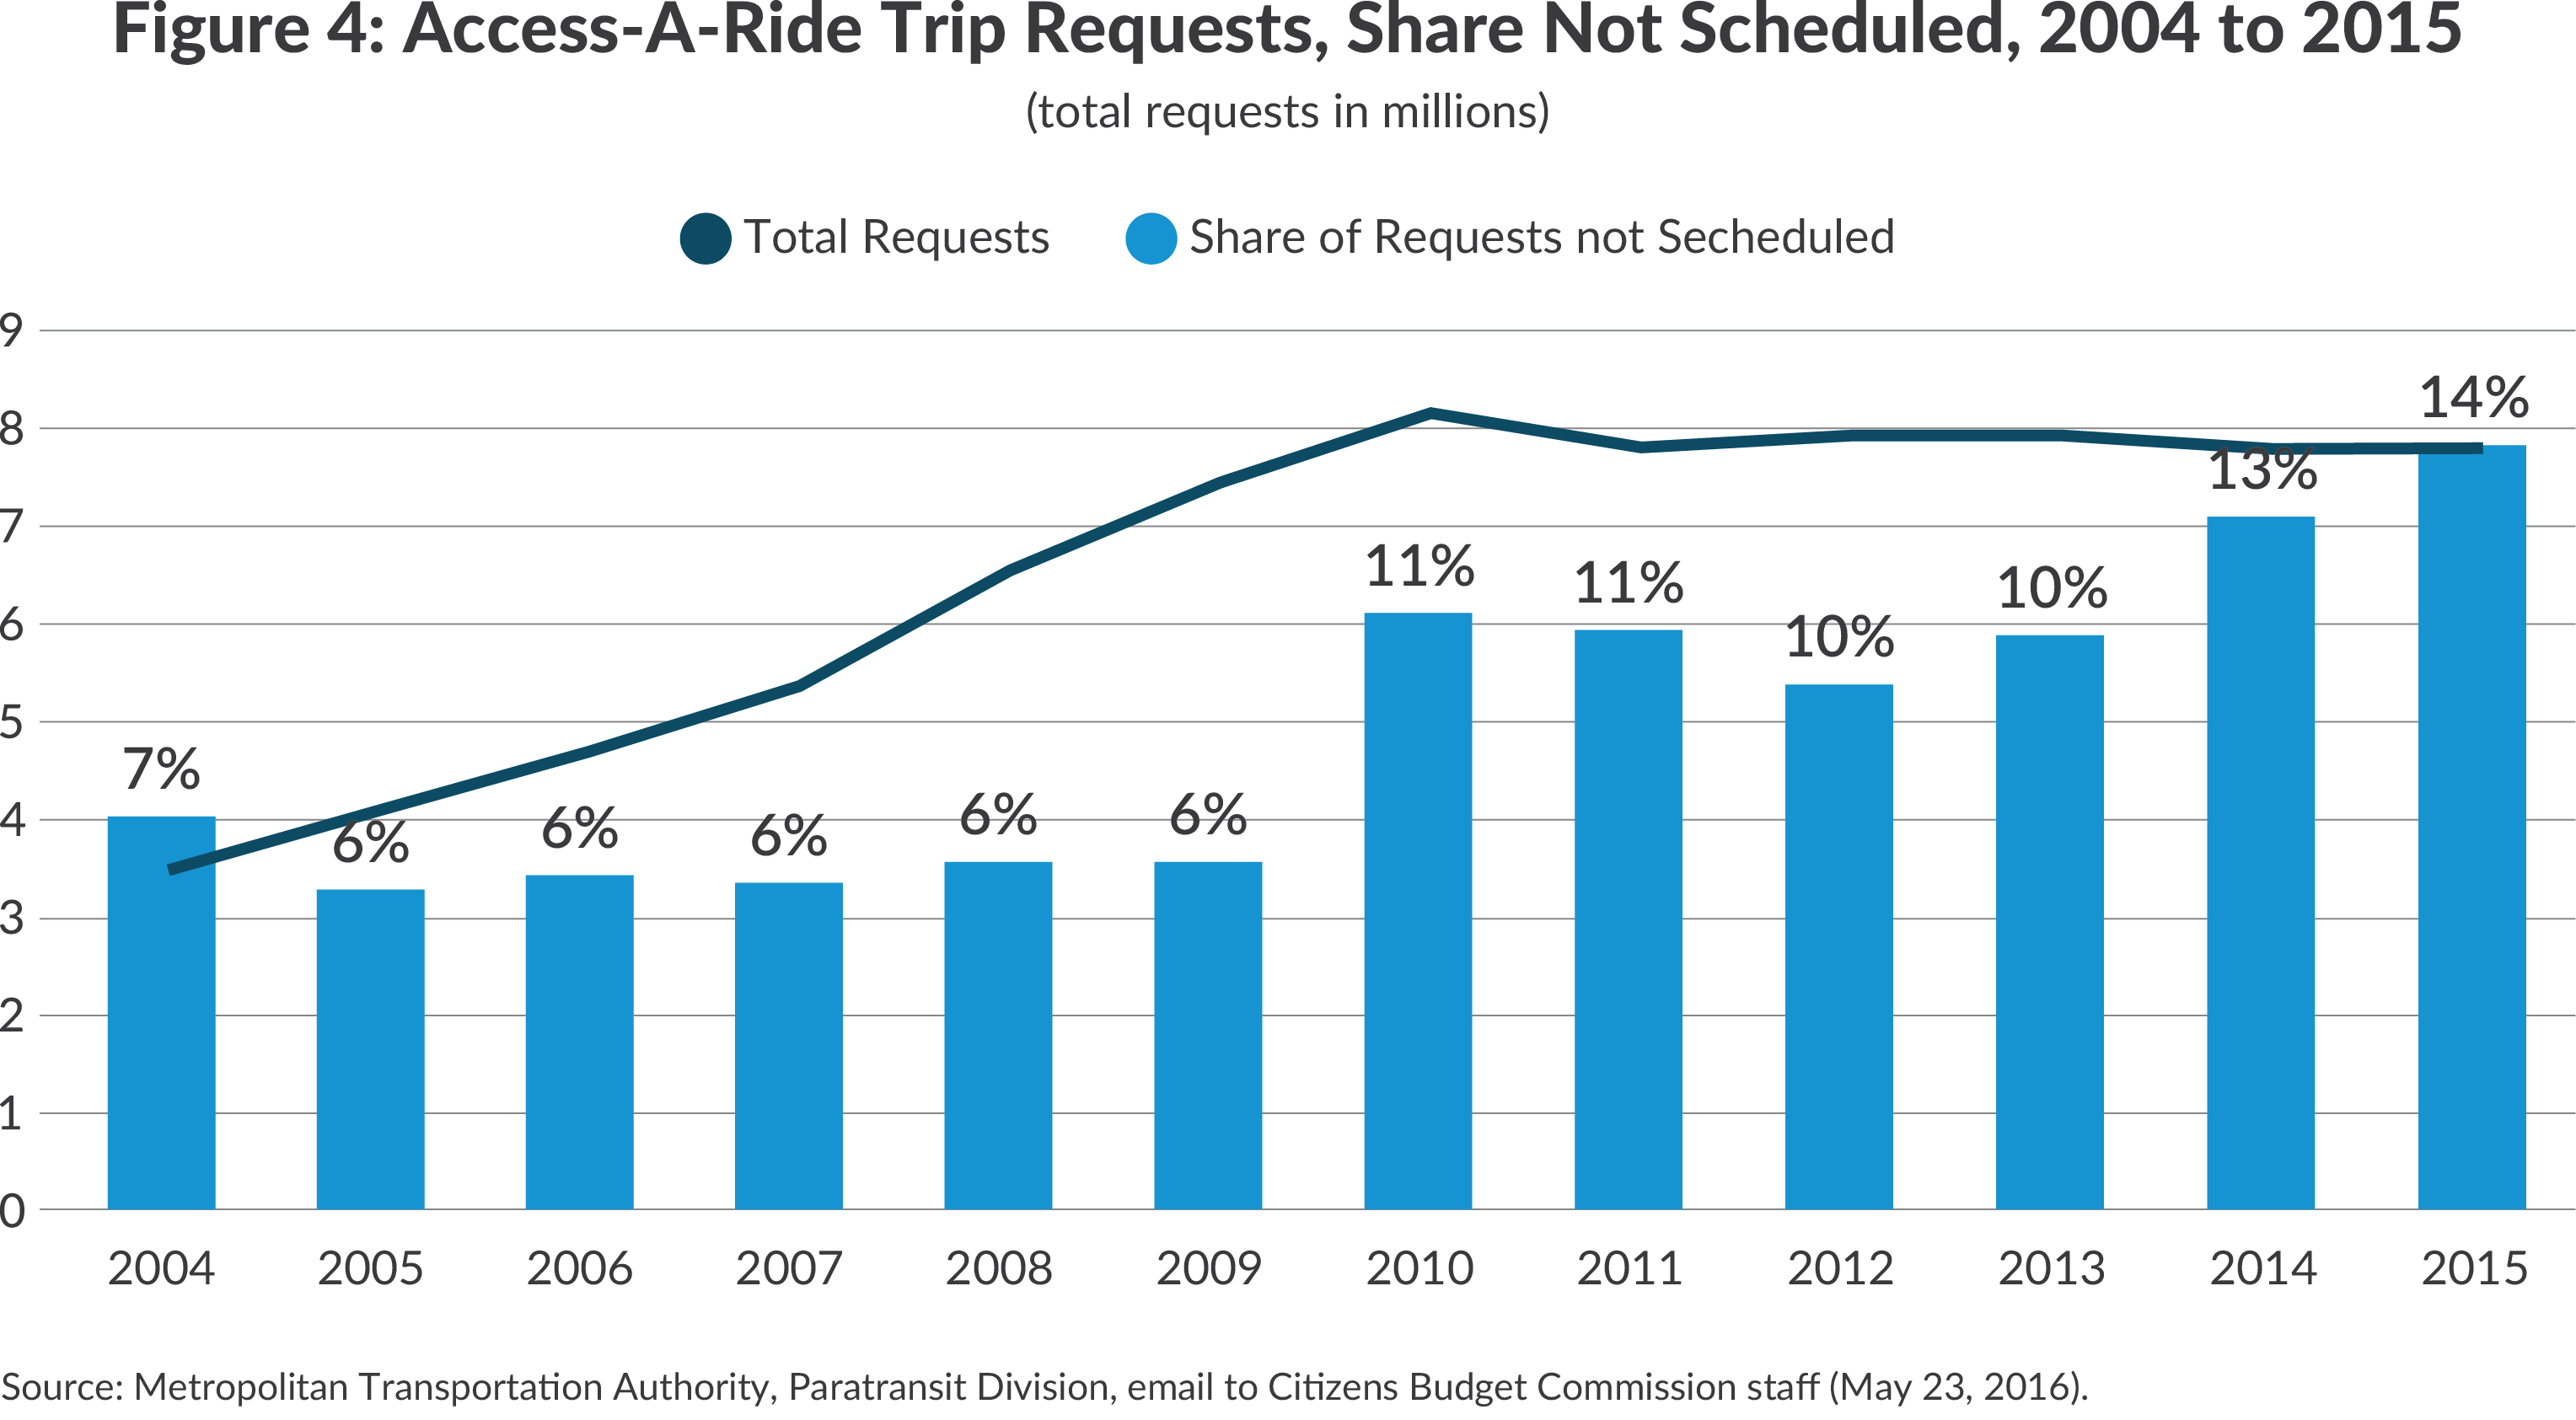 Access-a-Ride Trips, and Share Not Scheduled, 2004-2015